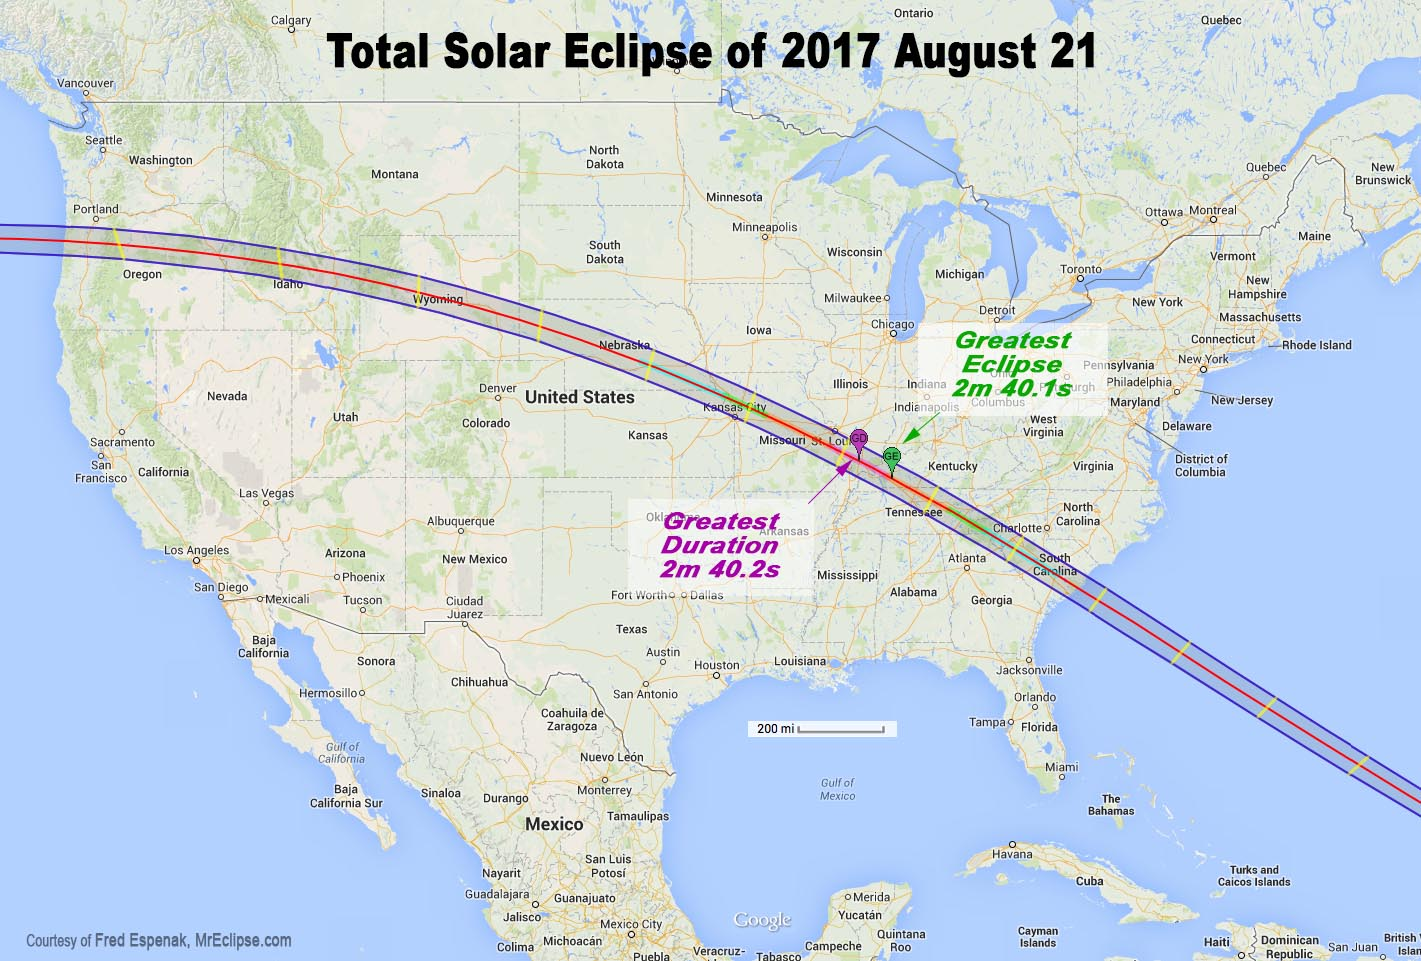 Map of Total Solar Eclipse Path in 2017 August